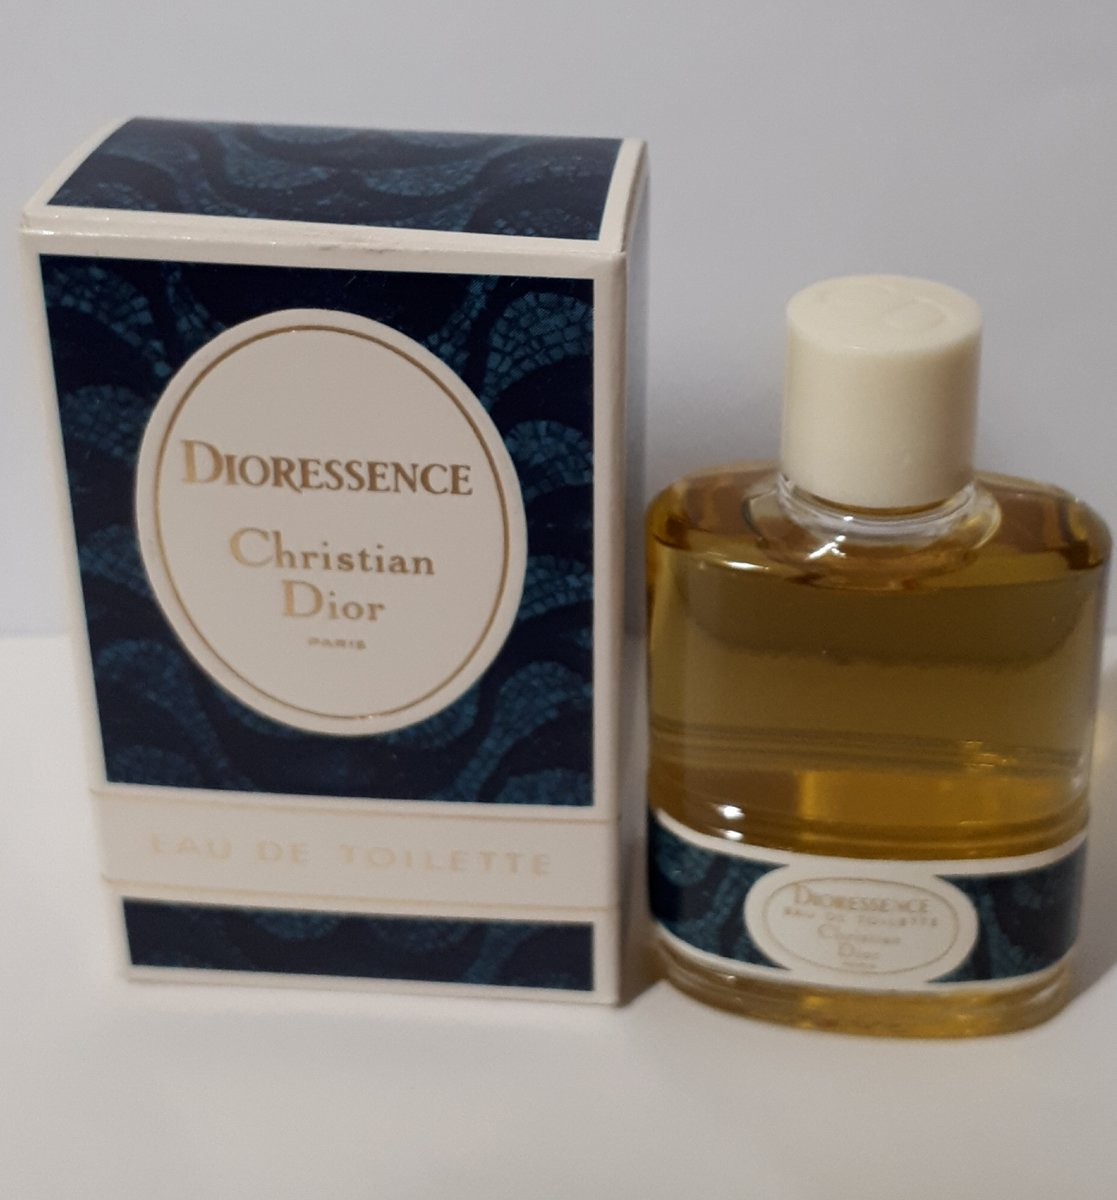 DIORESSENCE, Christian Dior, Eau de toilette, 10 ml, mini